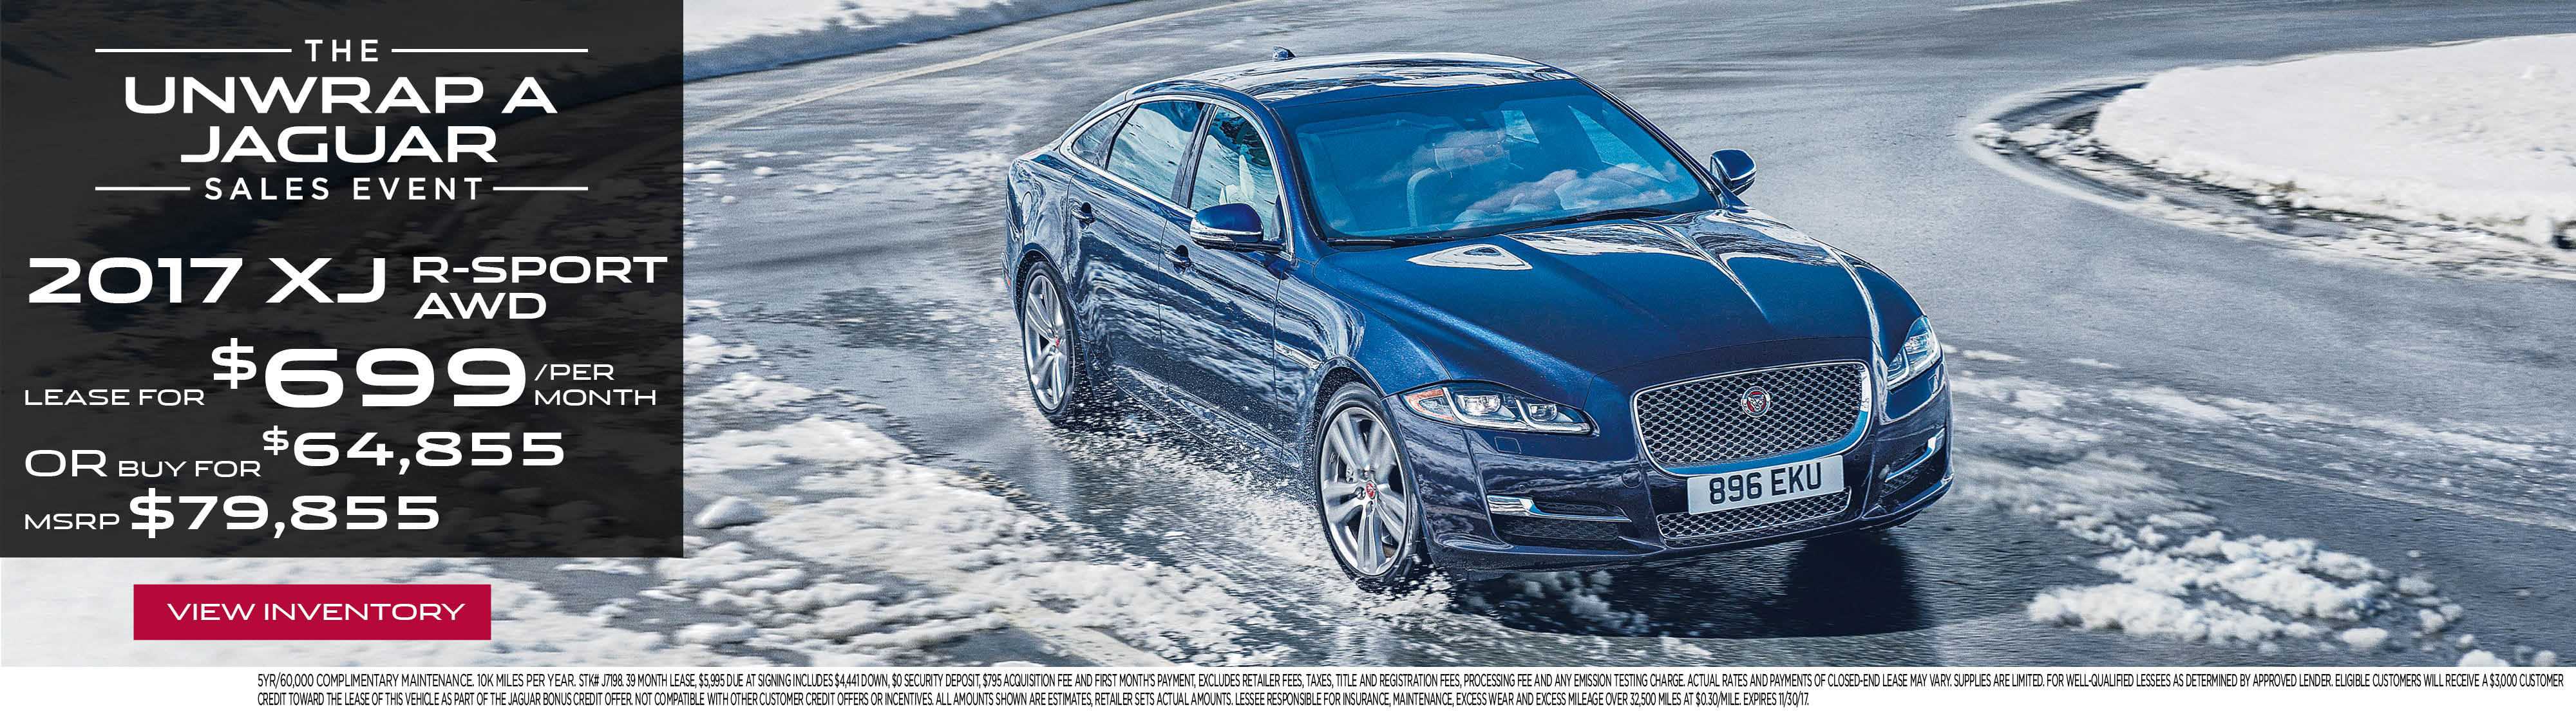 New Jaguar Car & Sedan Specials